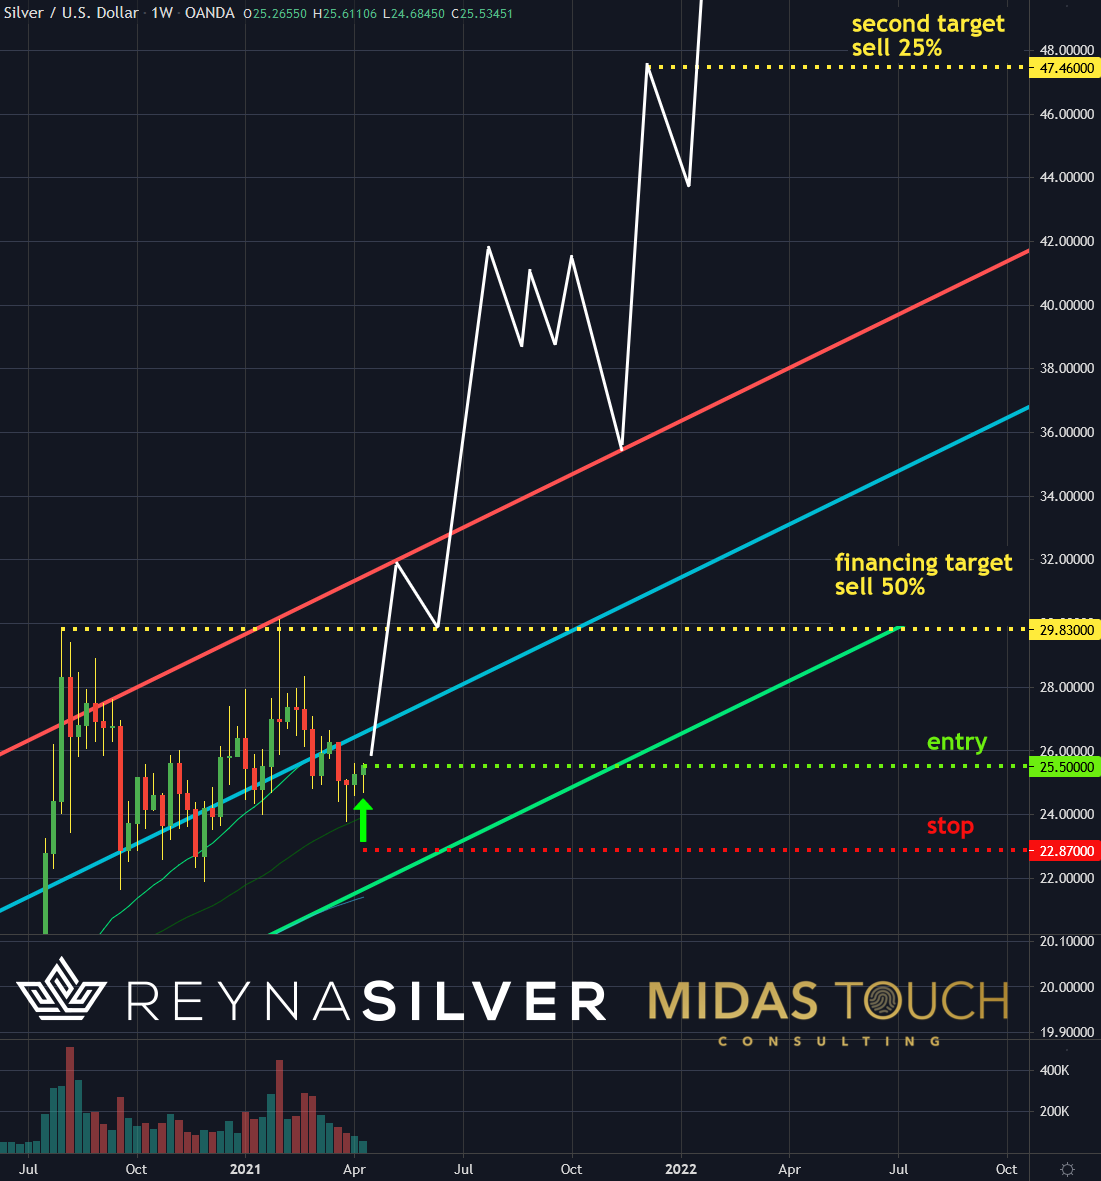 Silver in US-Dollar, weekly chart as of April 15th, 2021. b